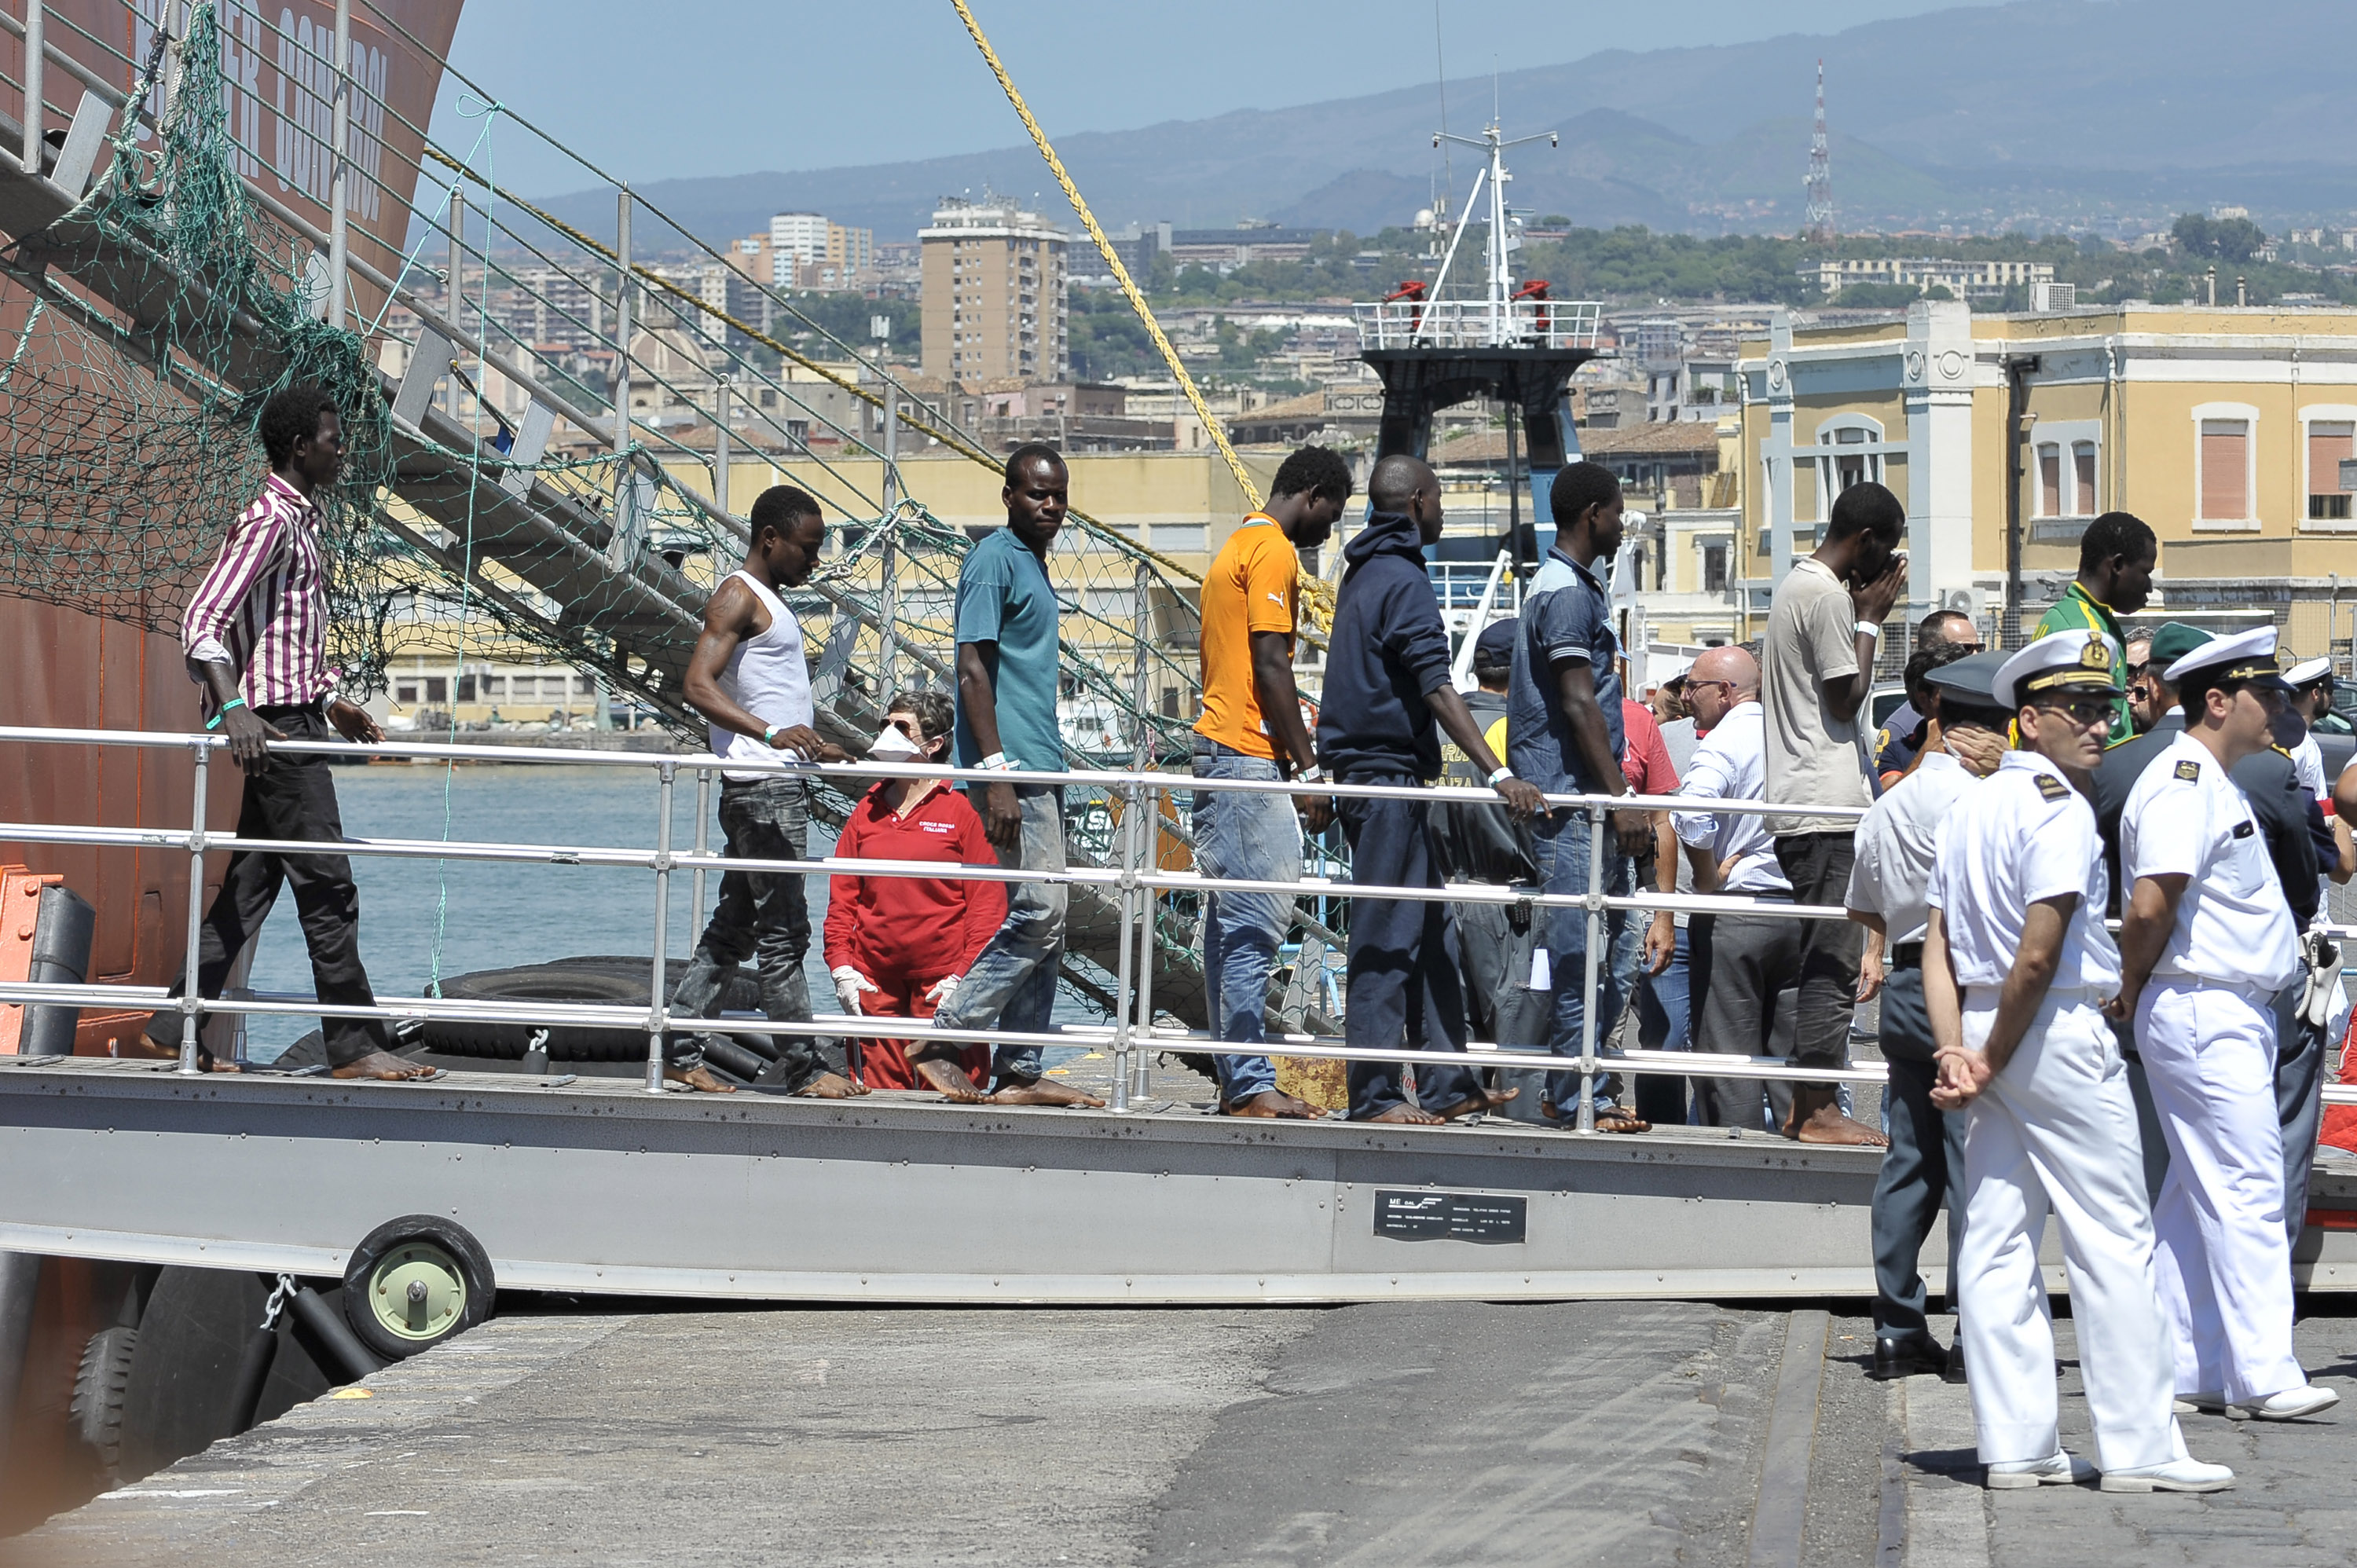 Migrants disembark from the Norwegian ship Siem Pilot at Catania harbor, Italy, Monday, Aug. 17, 2015